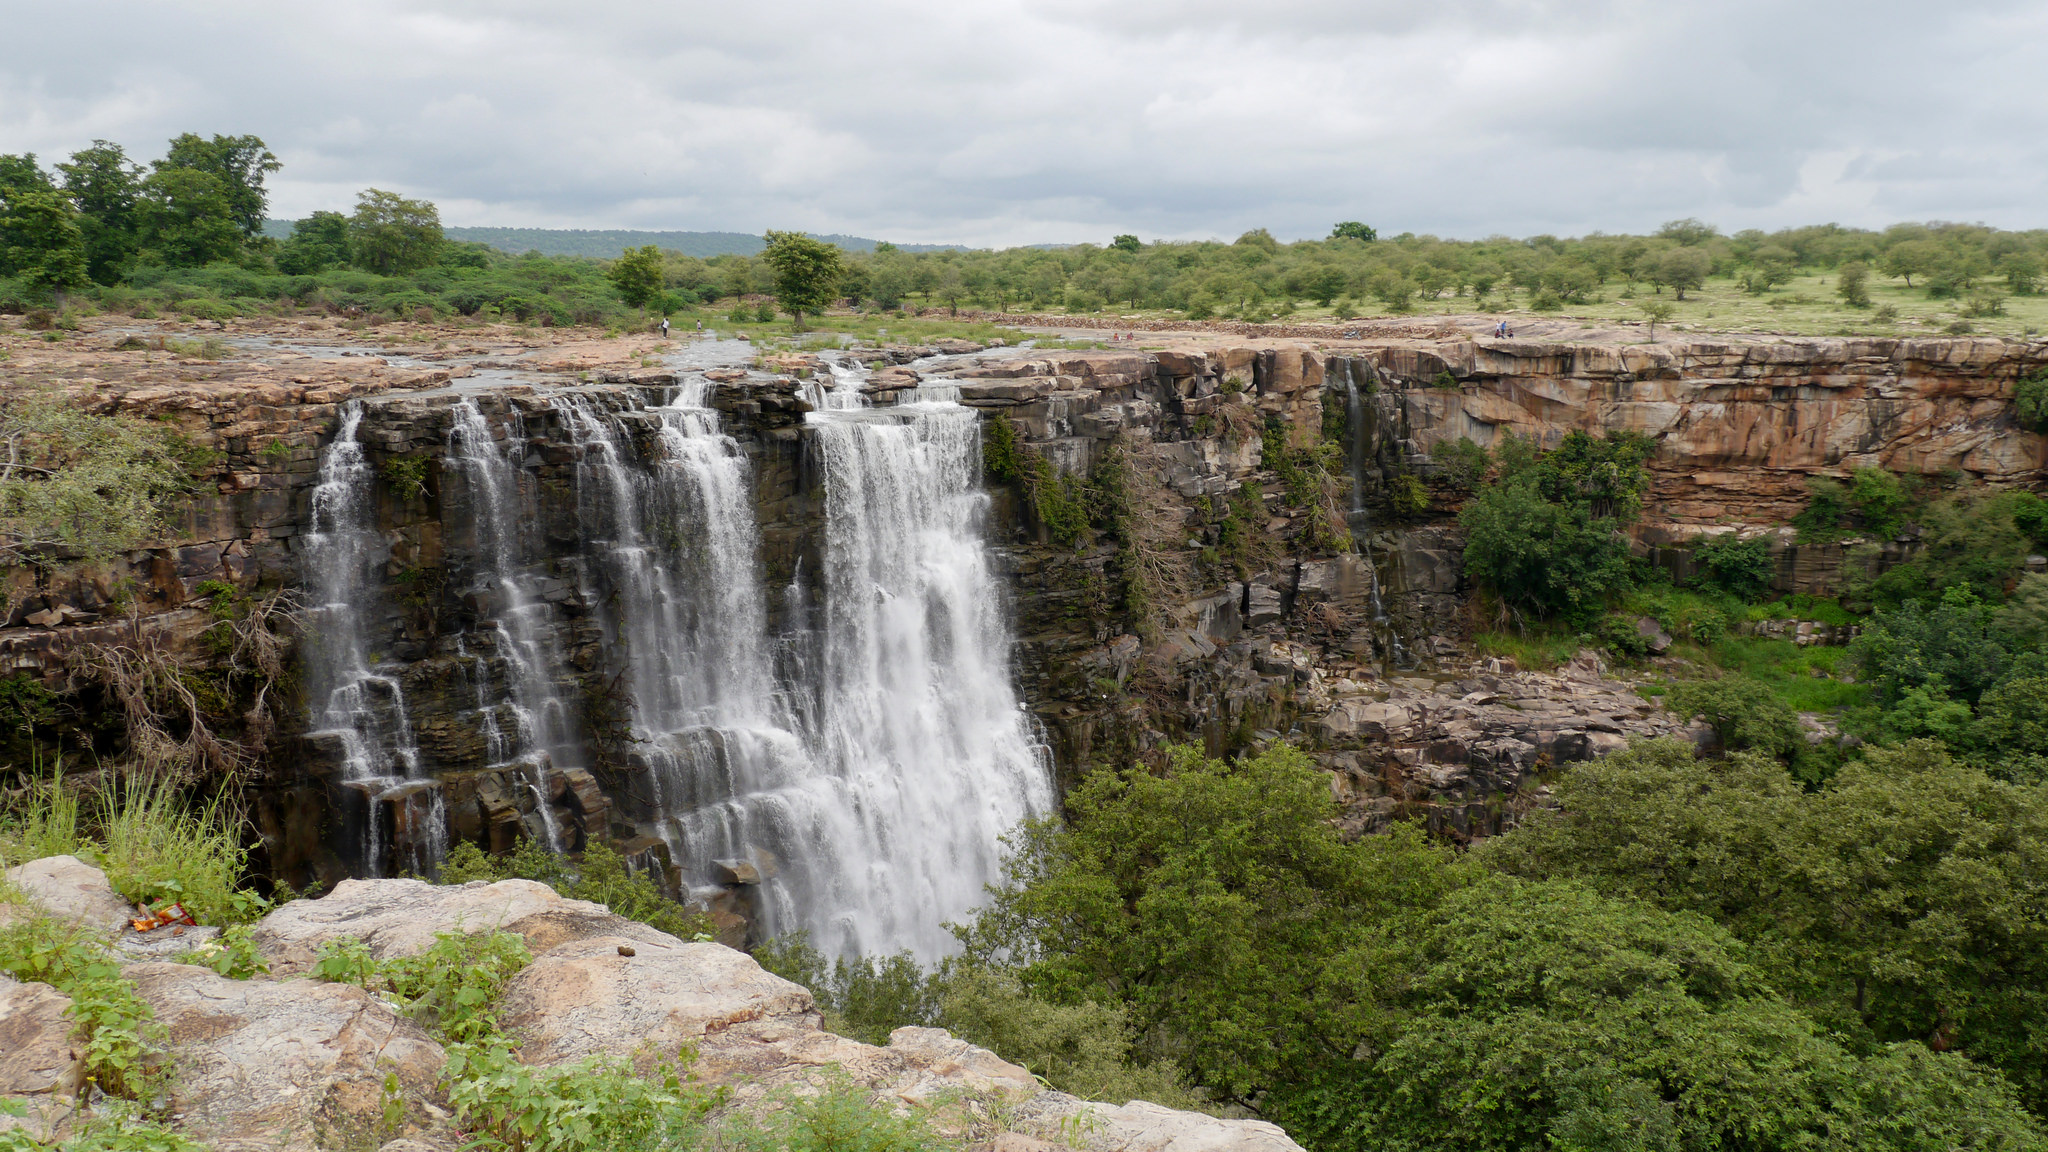 Bhimlat Waterfalls – Rajasthan – Most Beautiful Waterfalls Of India